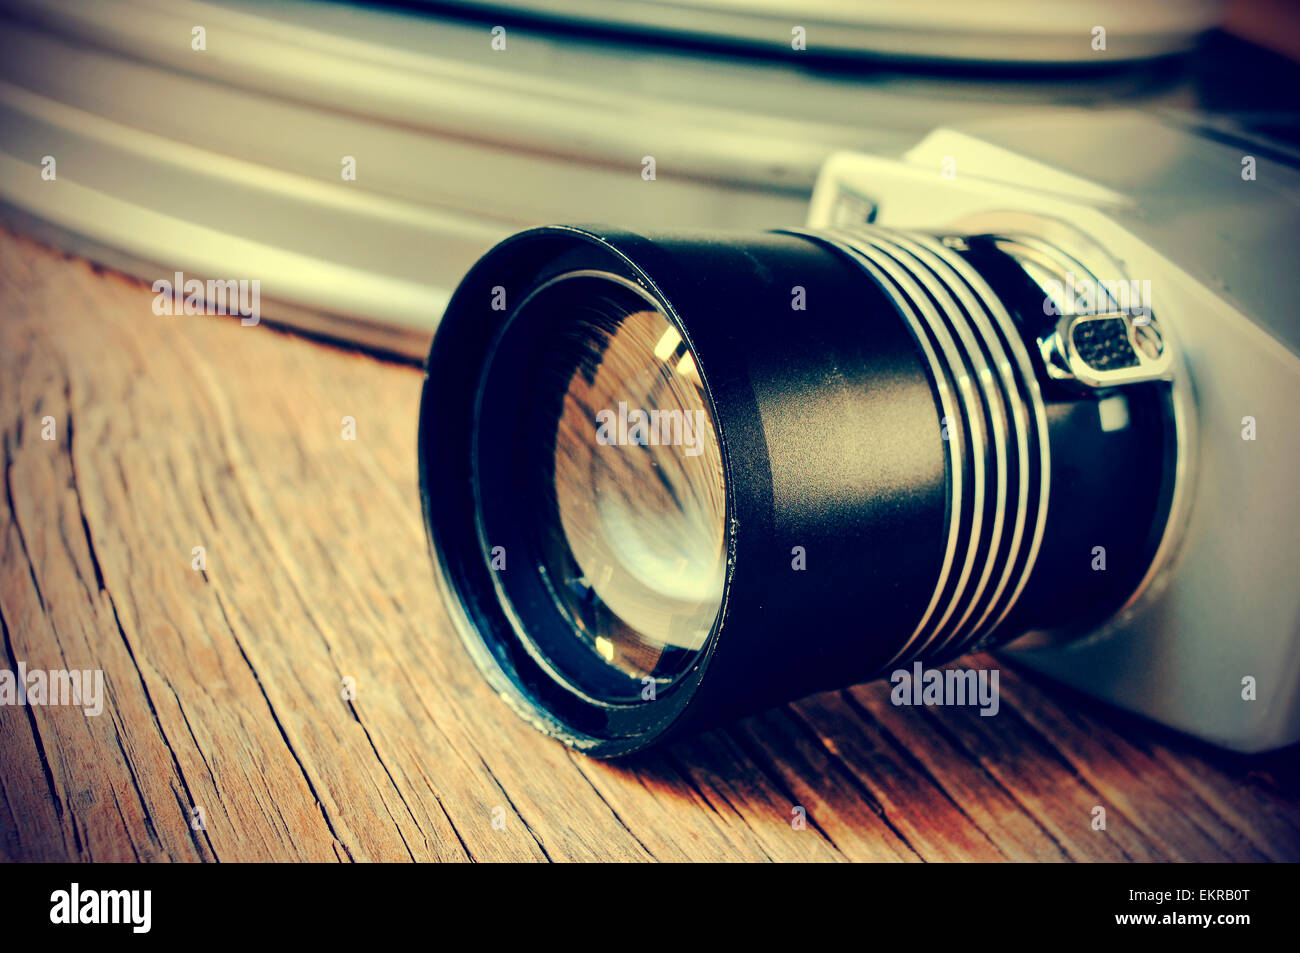 closeup of a retro film camera and some metal movie film reel canisters on a rustic wooden surface, filtered and - Stock Image